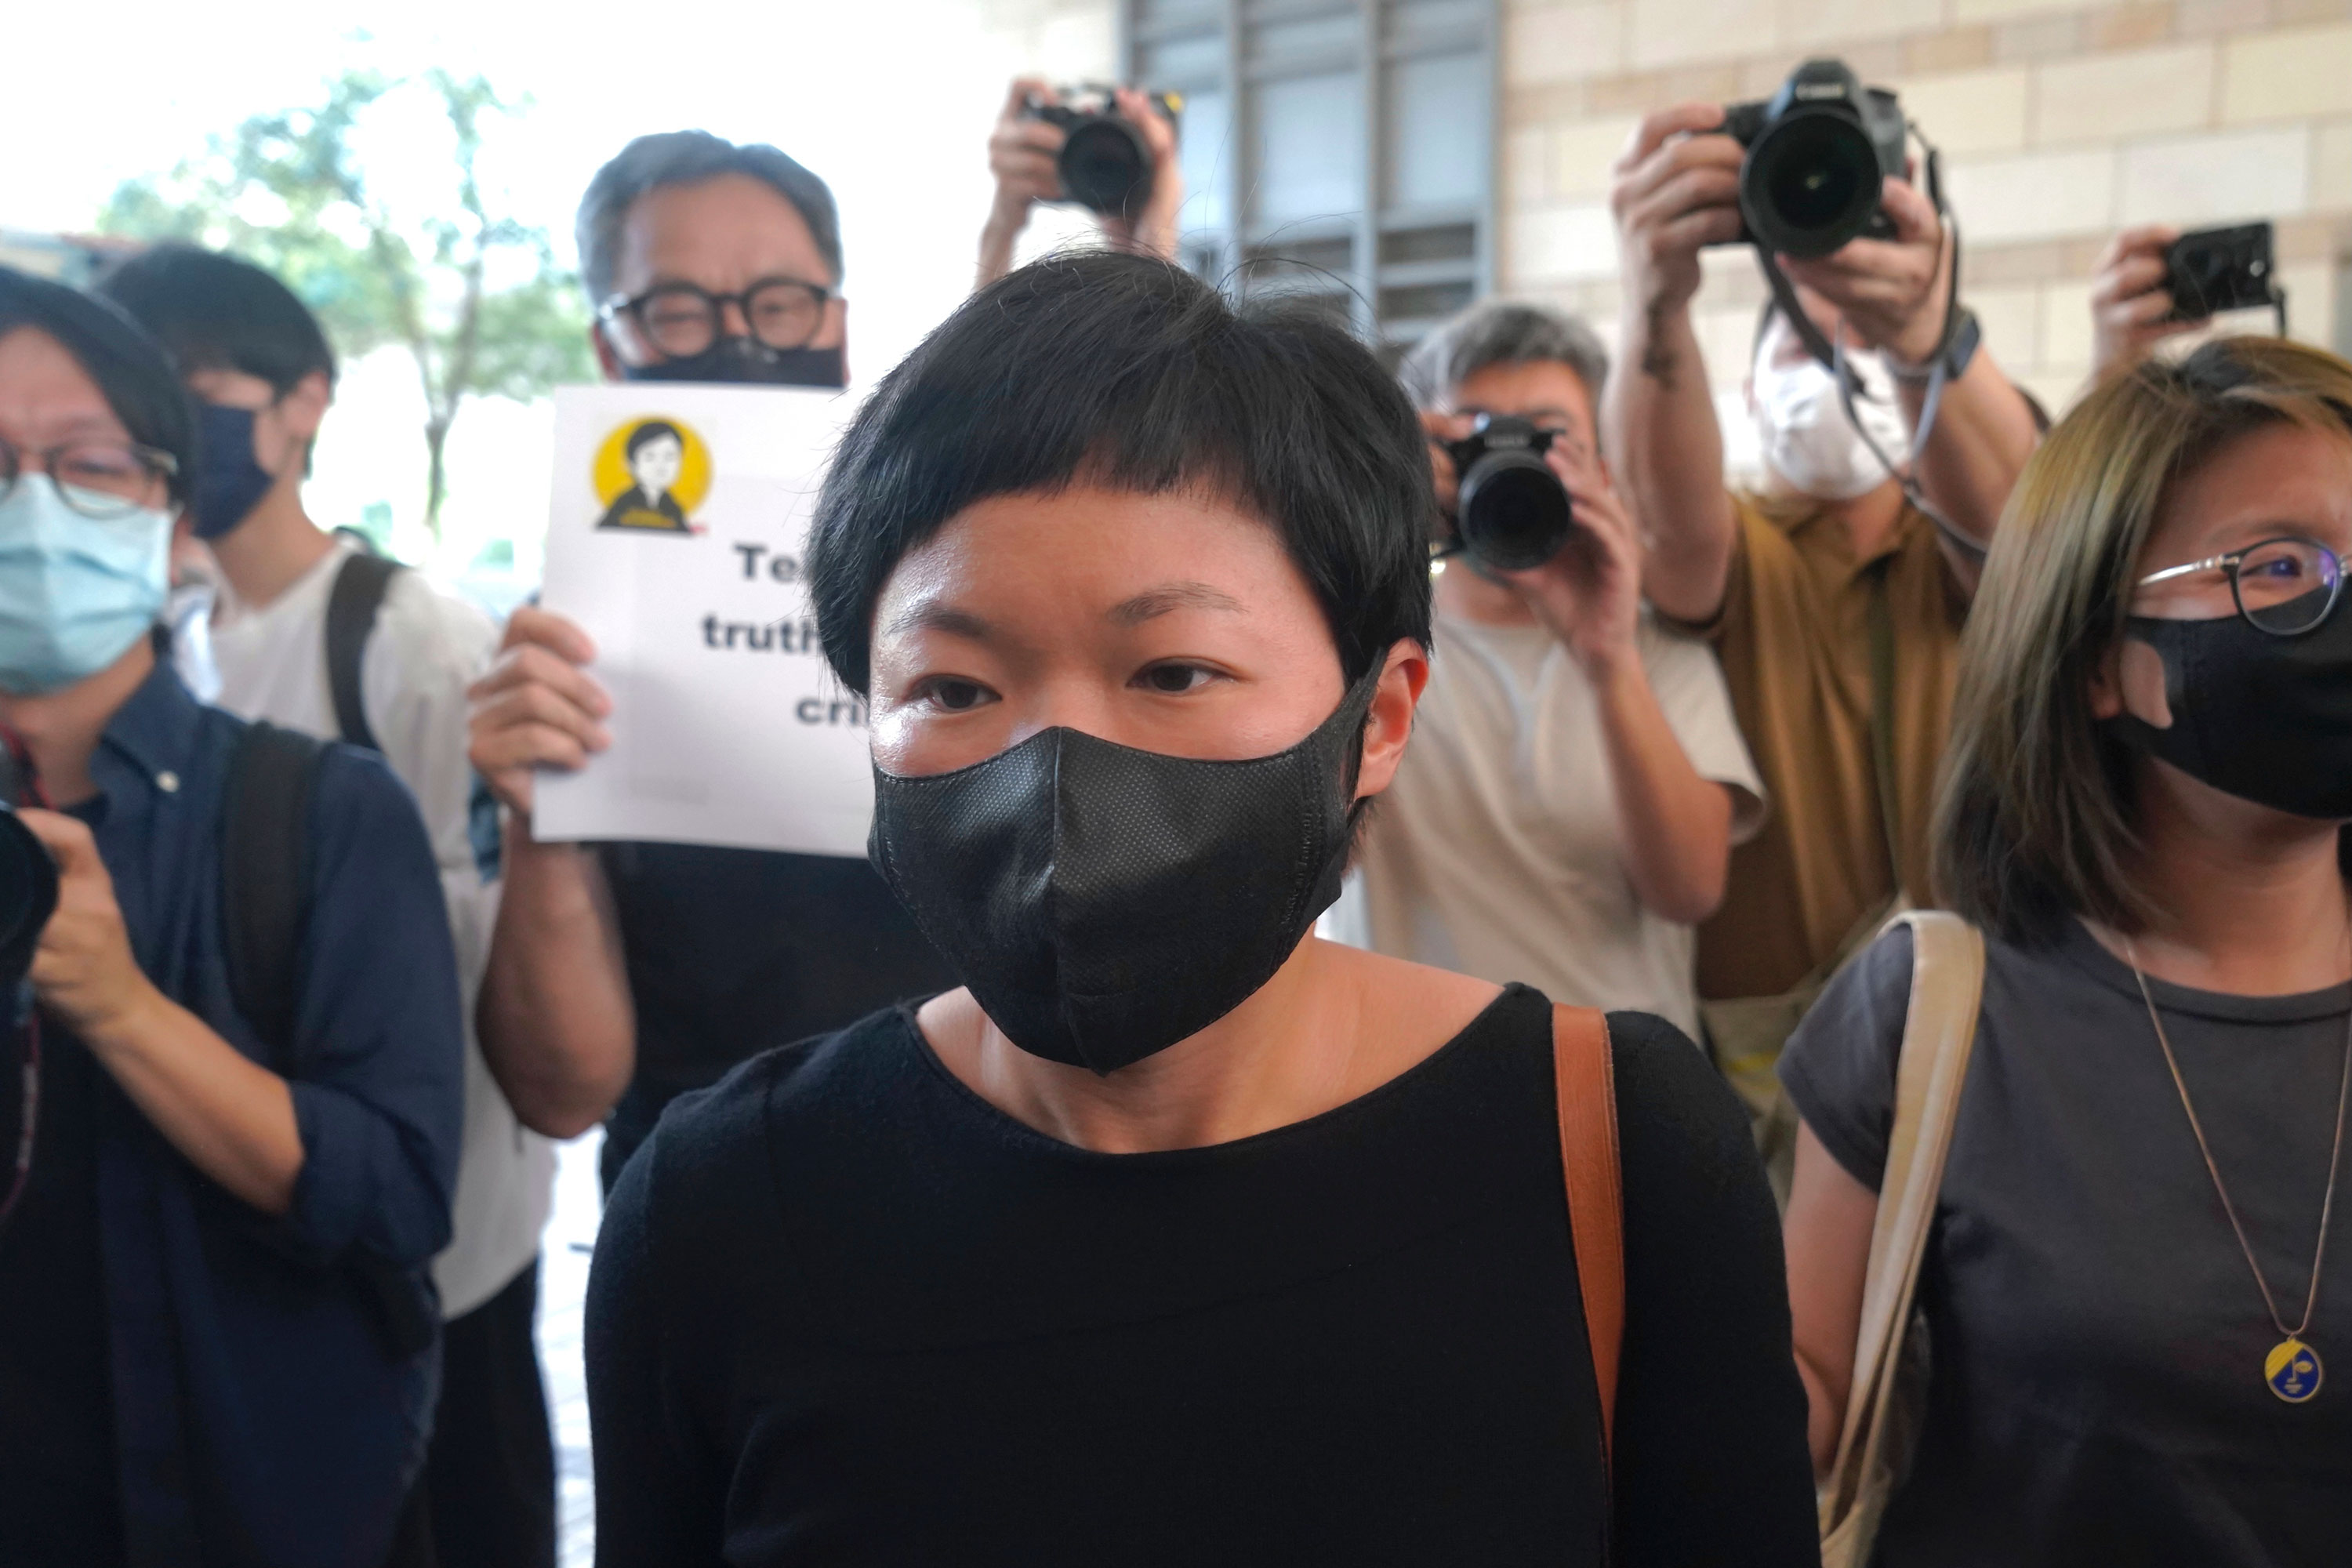 This Hong Kong journalist won awards for her investigation. Now she's been convicted for her work